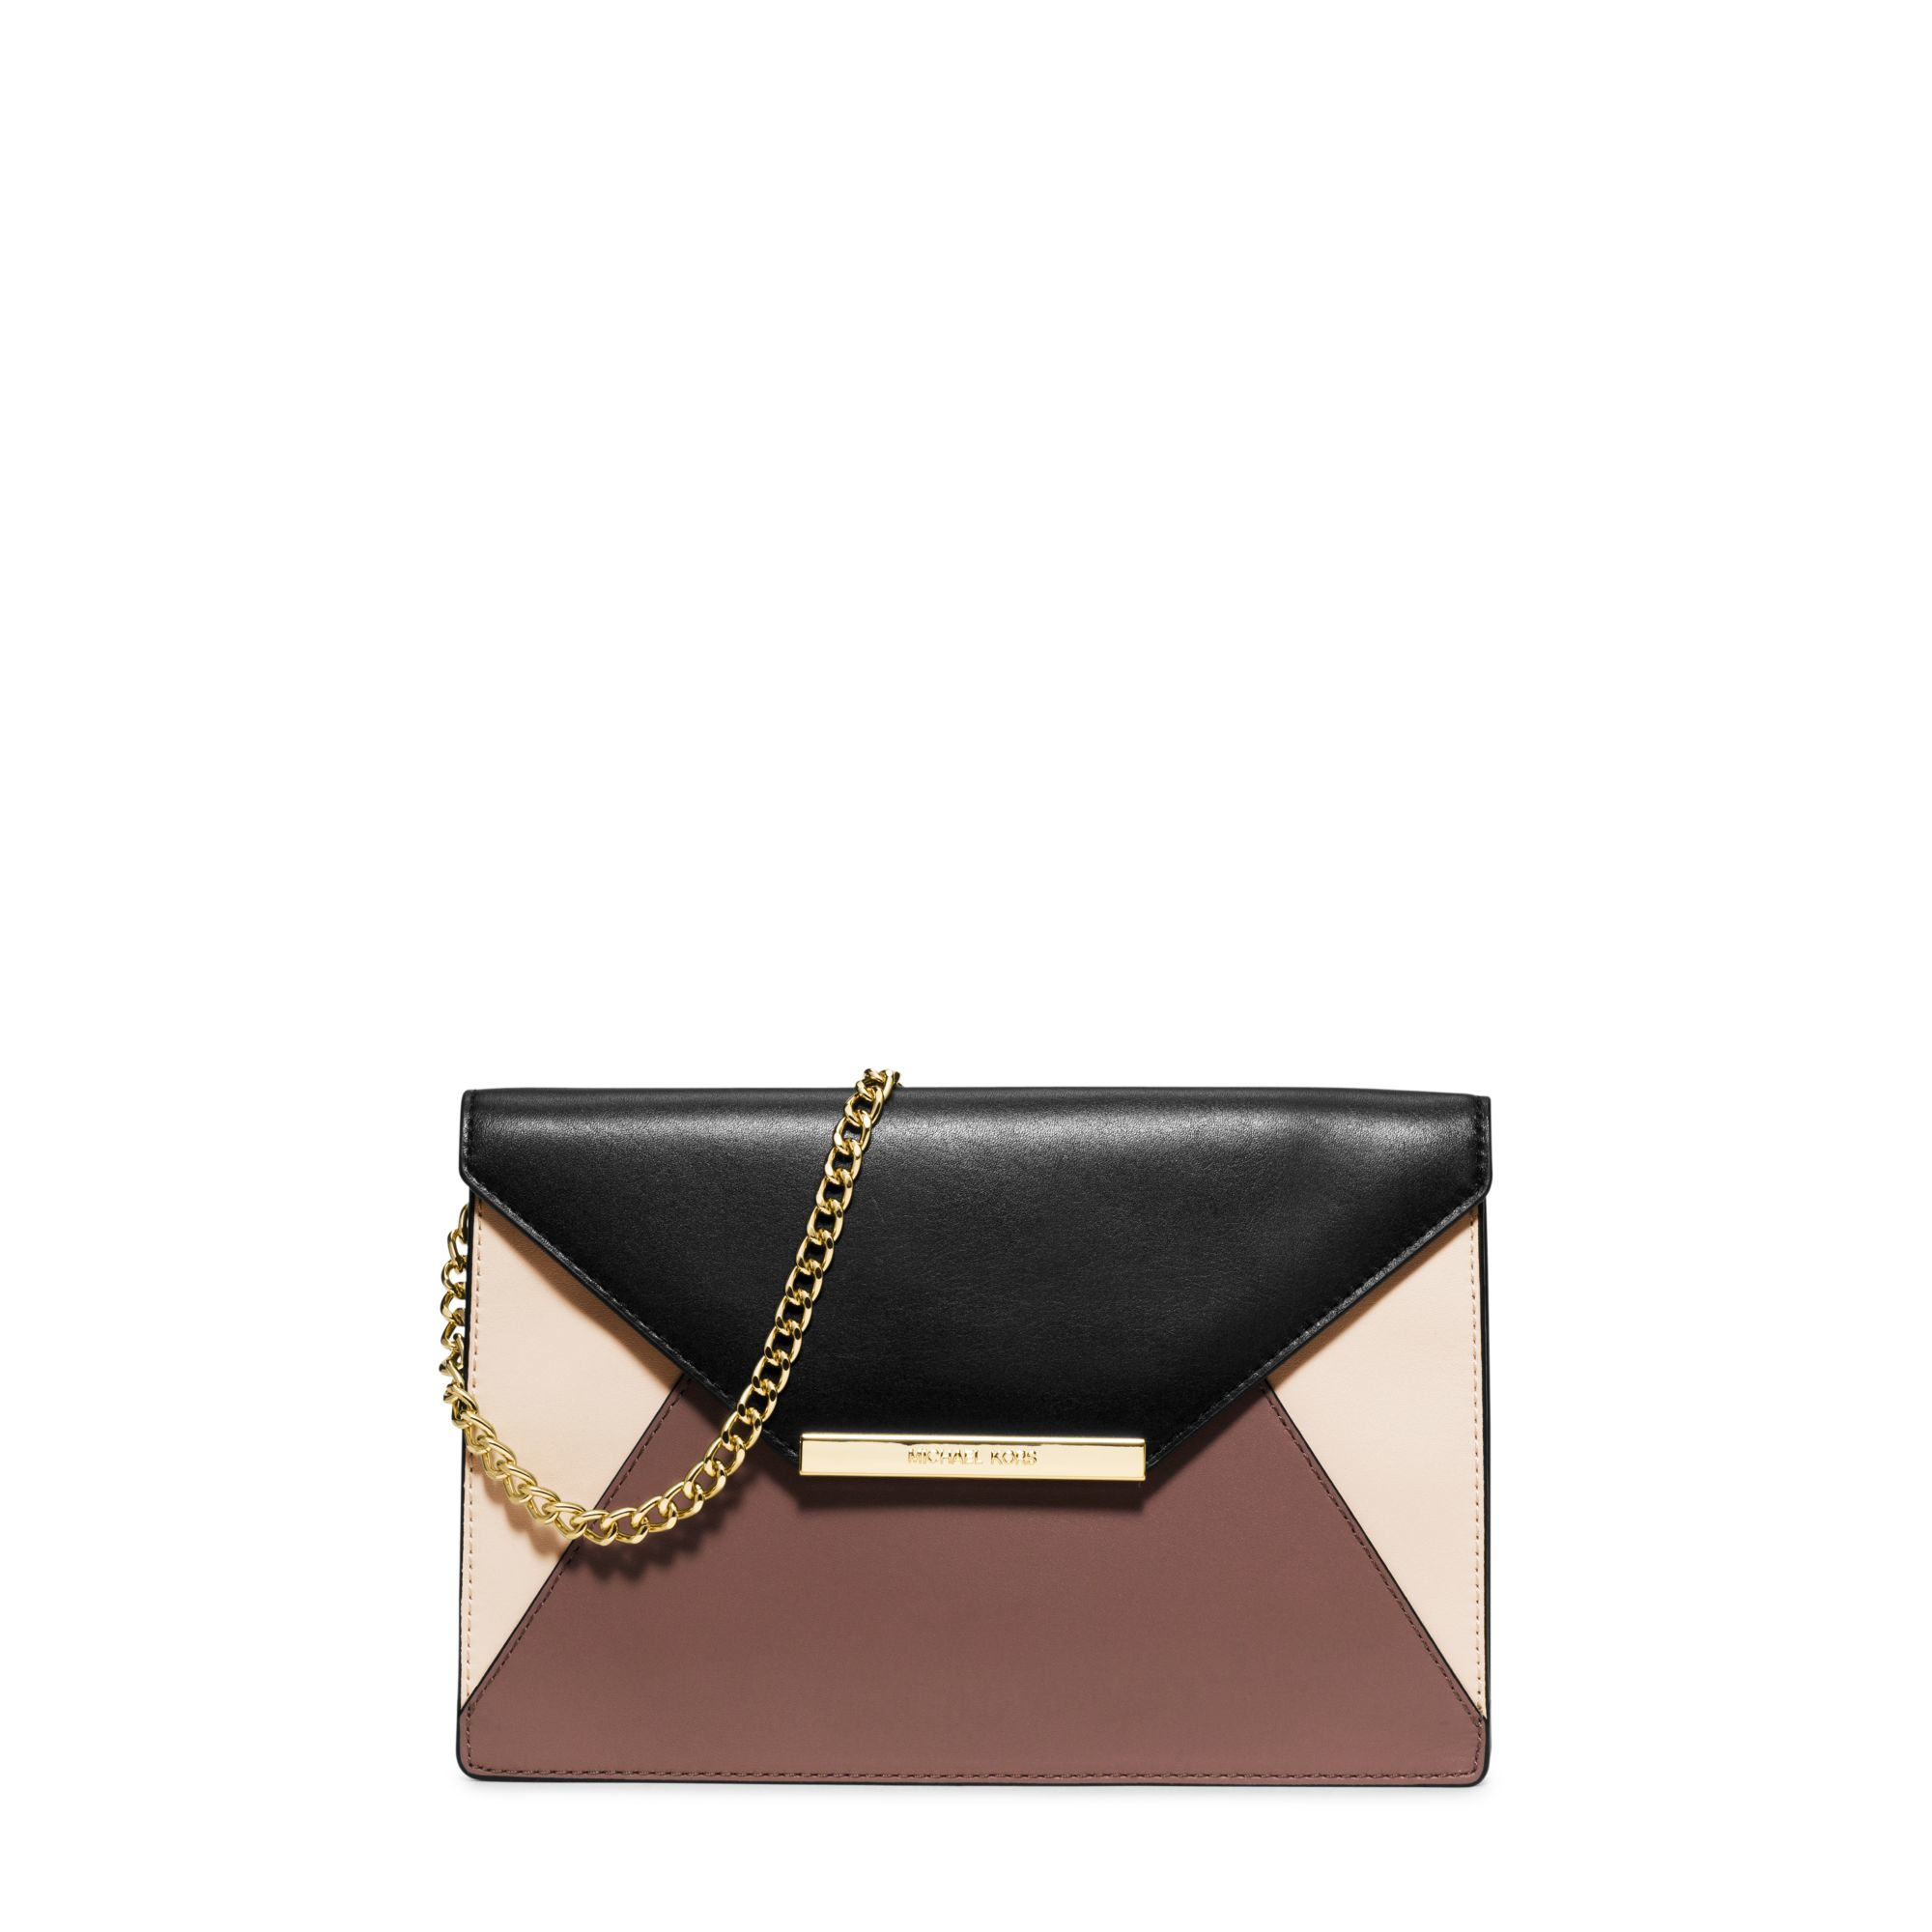 200e5f93469c3 Lyst - Michael Kors Lana Color-block Leather Envelope Clutch in Pink